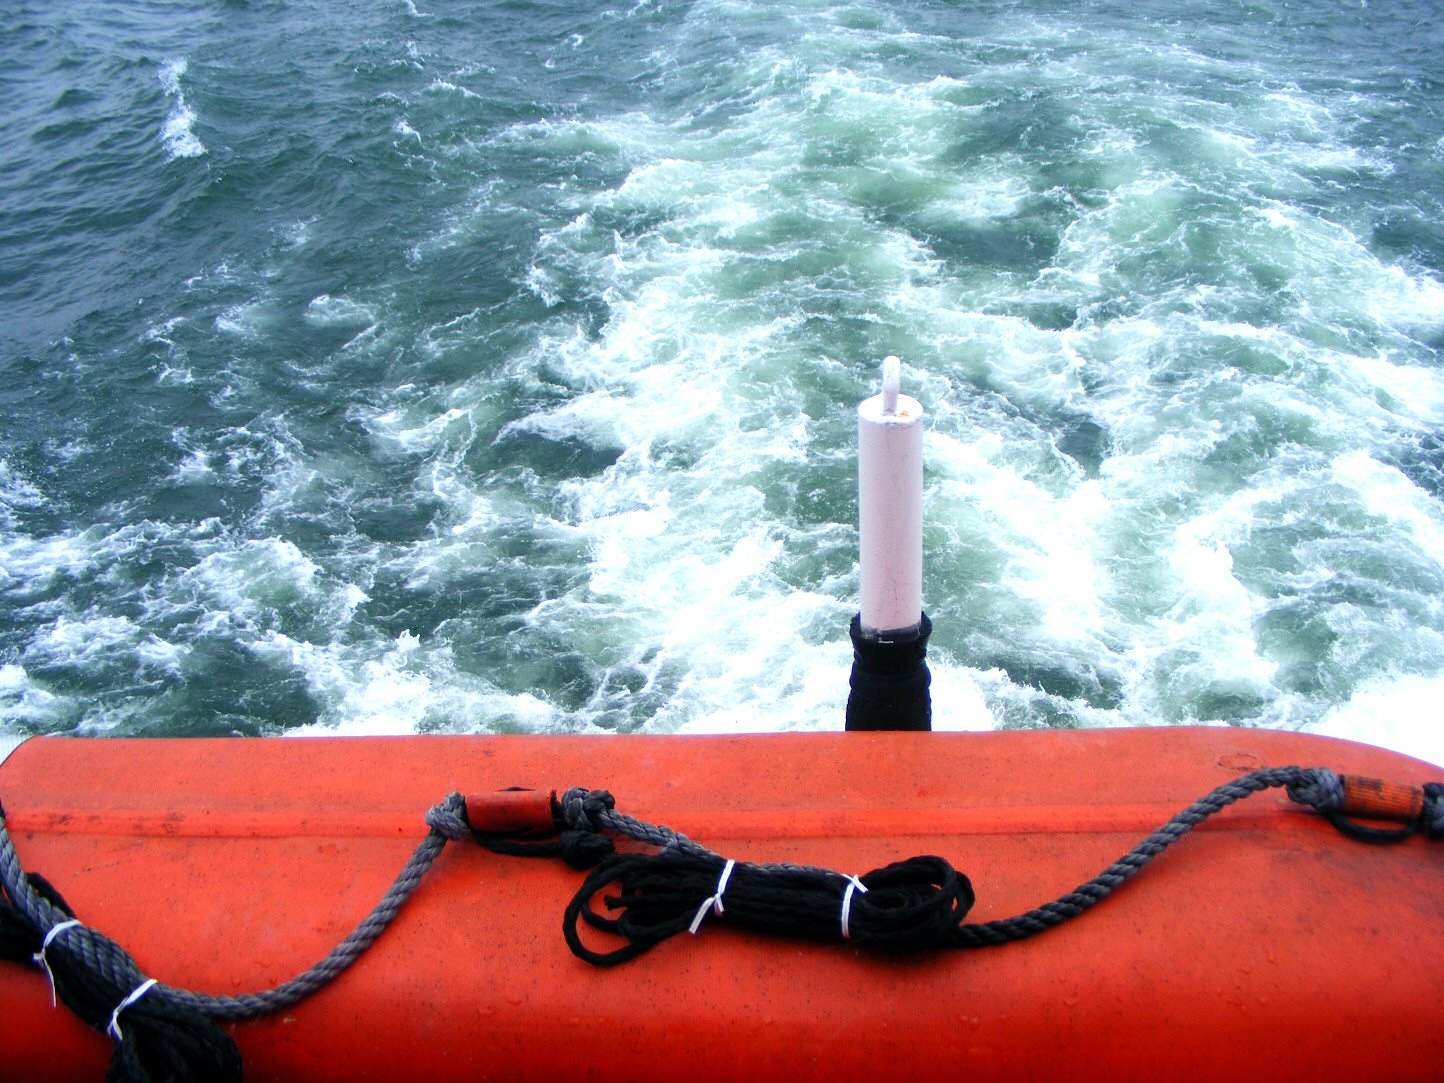 Ruffled Angry Water Behind a Ferry